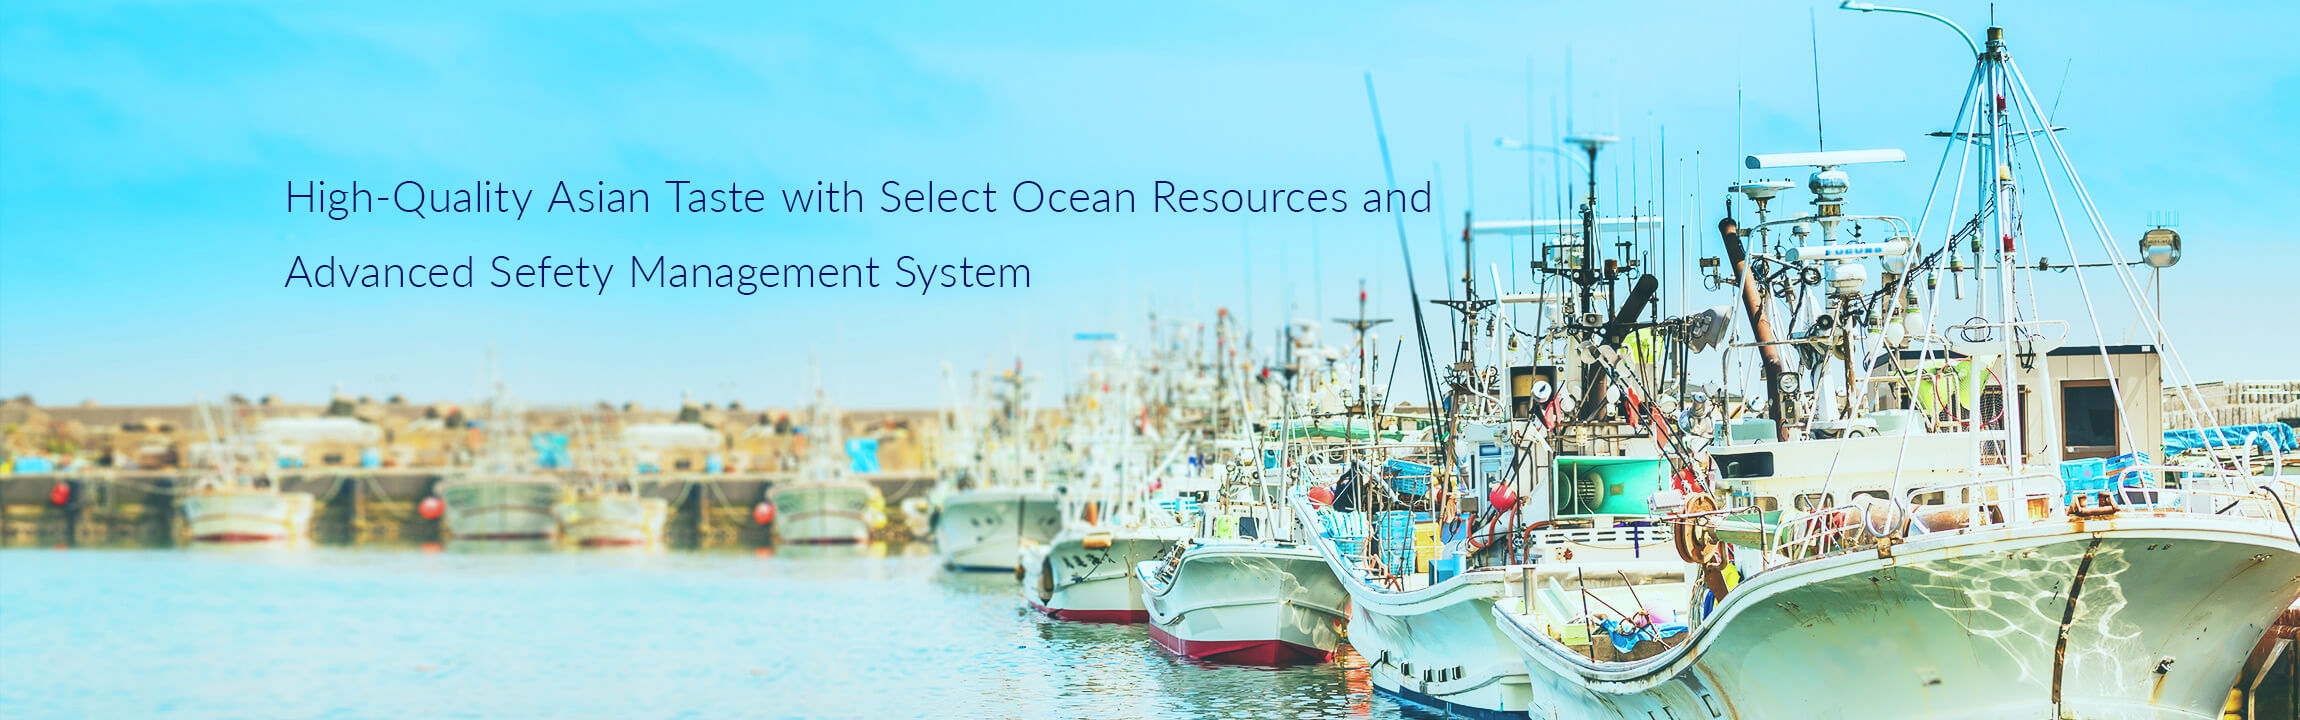 High-Quality Asian Taste with Select Ocean Resources and Advanced Sefety Management System